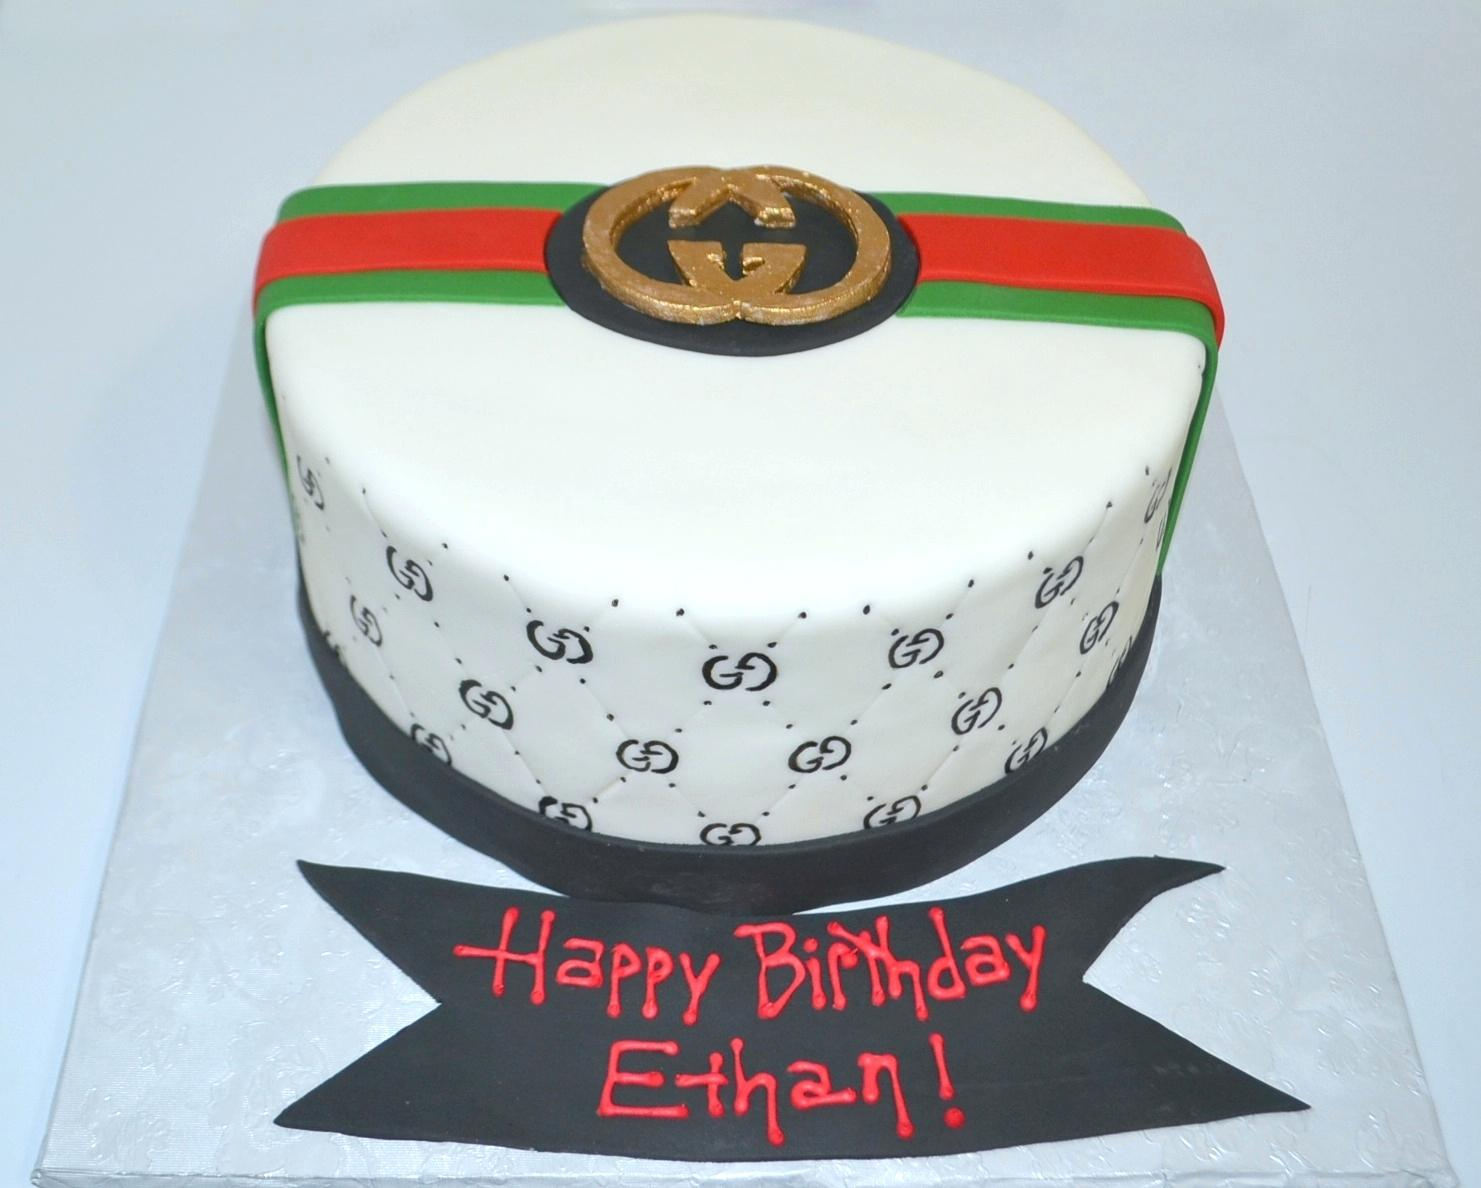 Gucci Birthday Cake Gucci Cake Ideas Gucci Birthday Cake Images Wondercraftnetworks